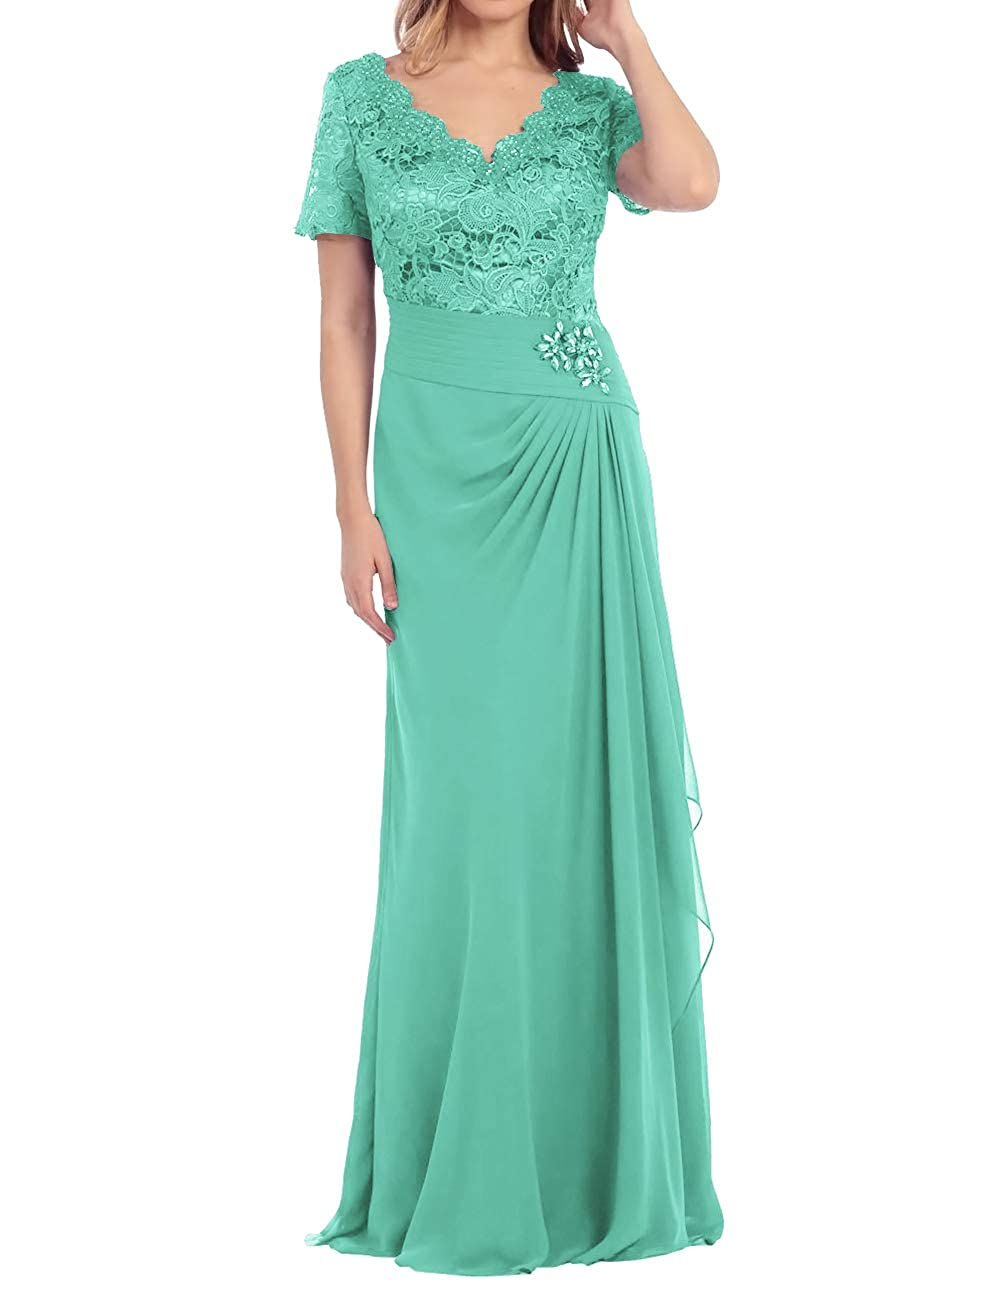 Aqua Mother of The Bride Dress Beaded Lace Prom Evening Gowns